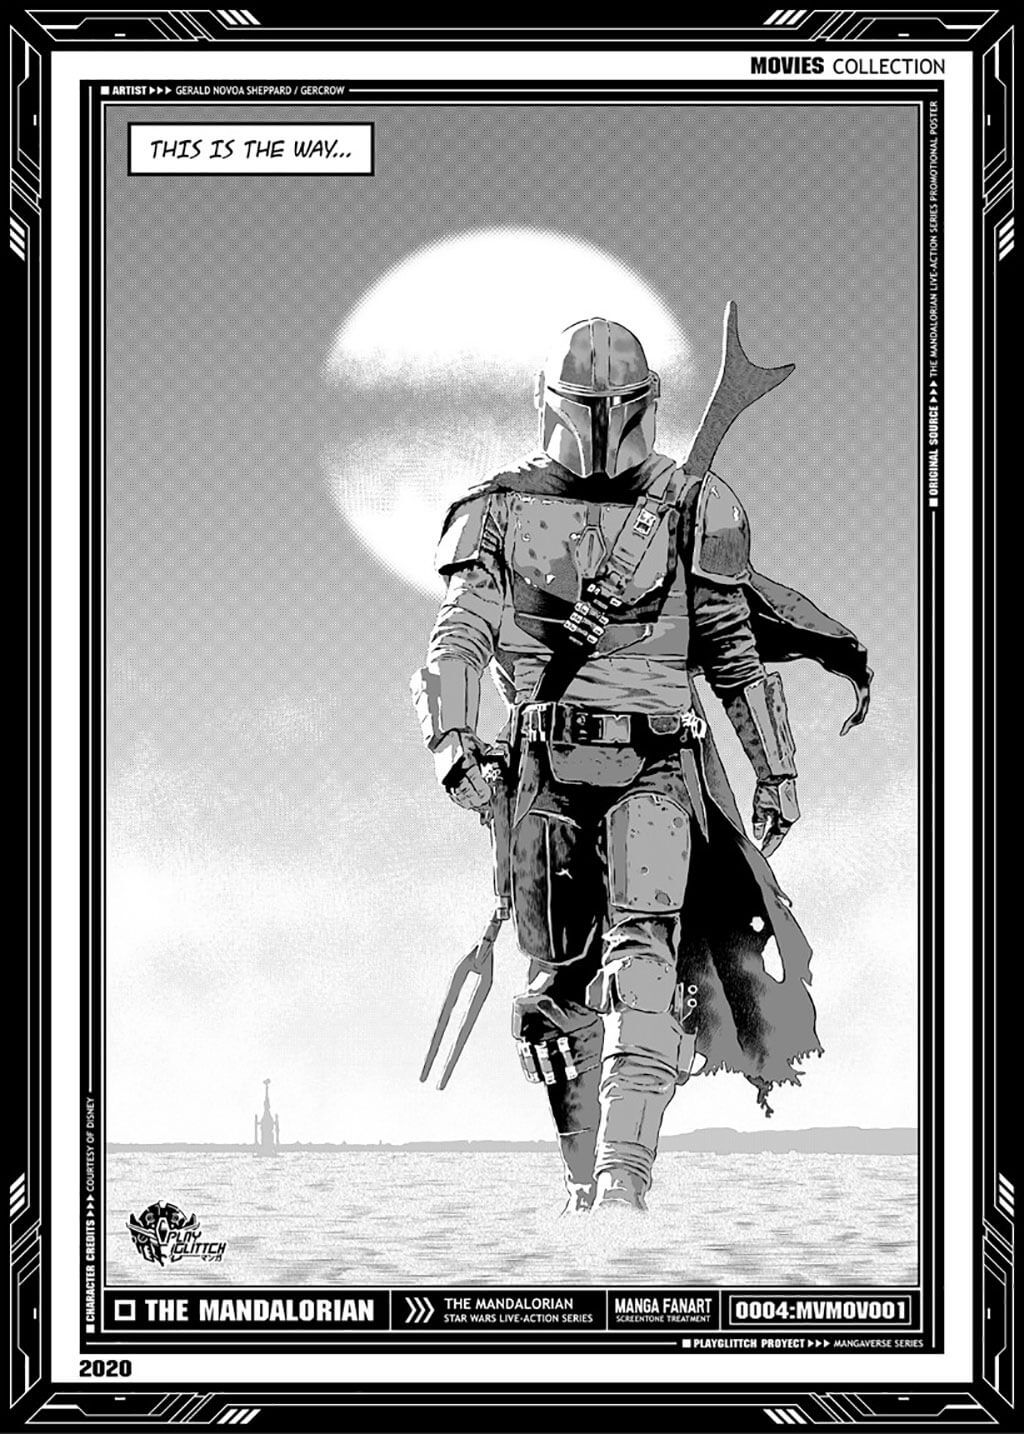 Mandalorian Fan Art by PLAY GLITTCH